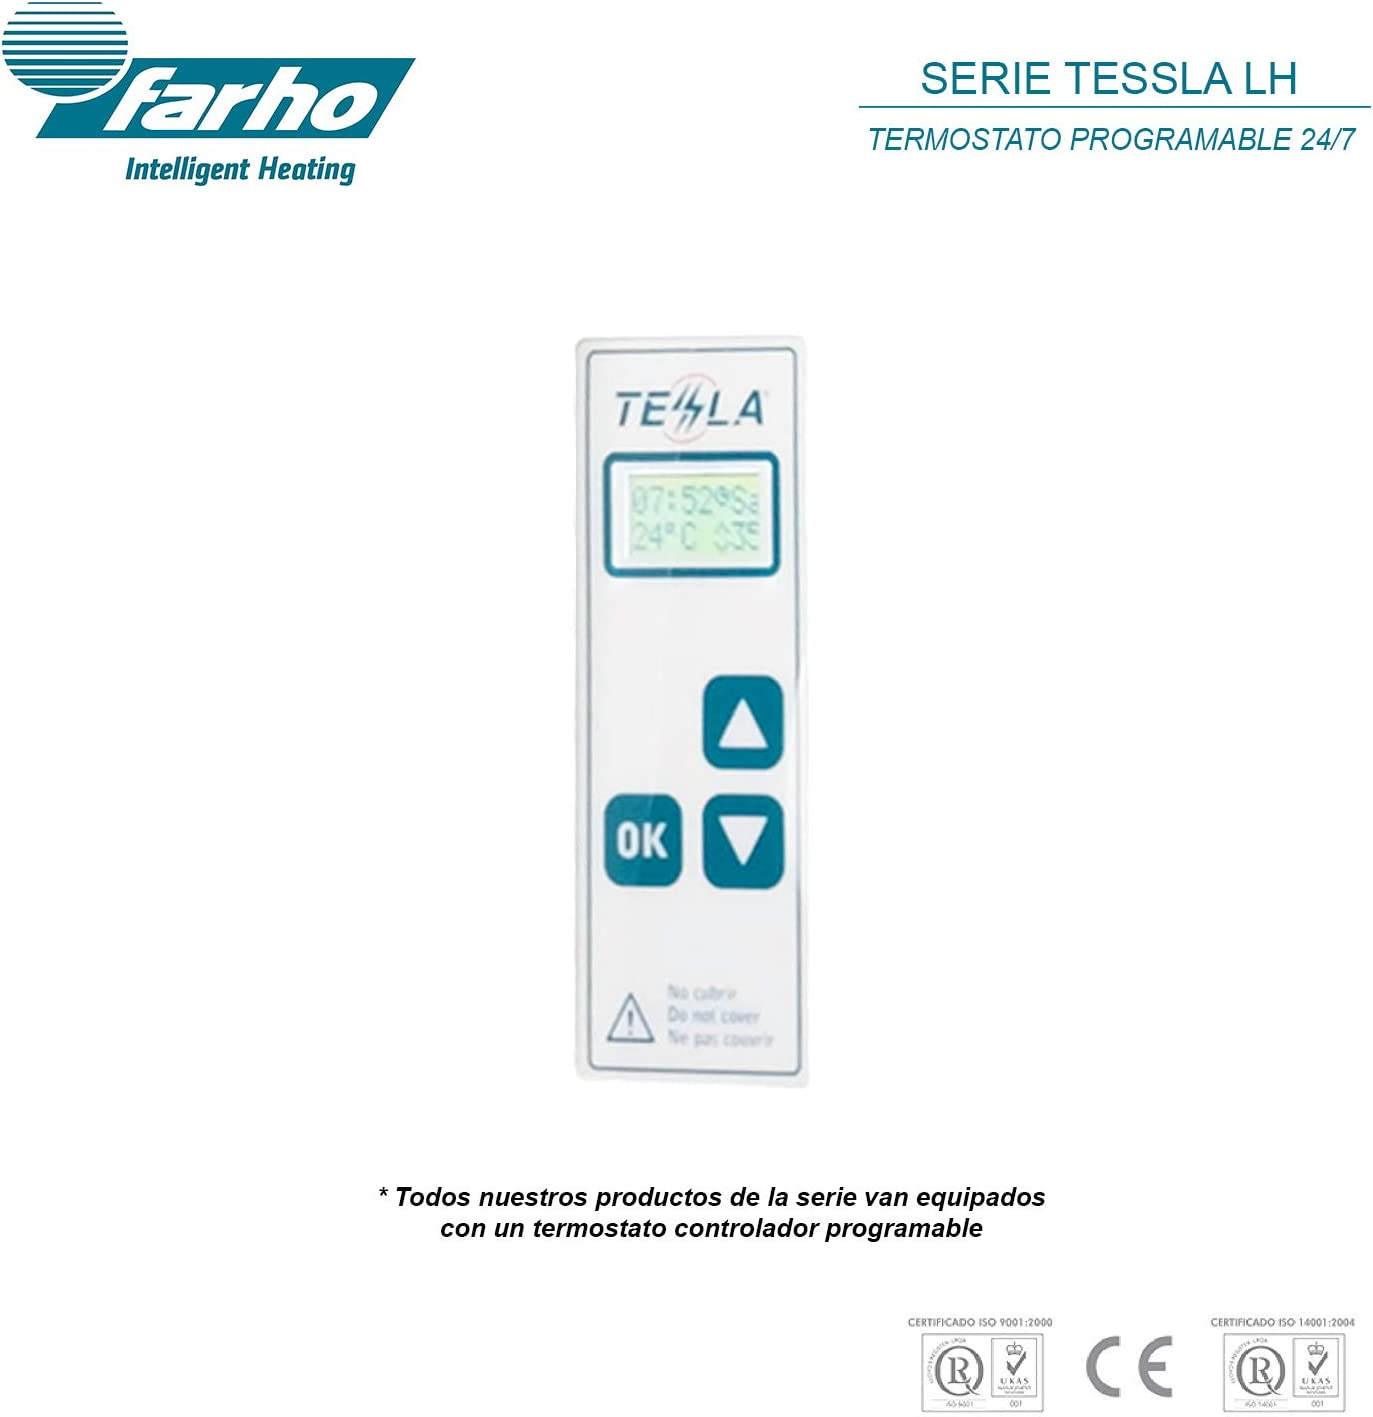 farho Oil Filled Electric Radiator Thermostatic Wall Mounted HEATER Tessla LH /· 500 Watts /· Electric Panel Heater Intelligent With 7 Day Timer /& Thermostat and Optional WIFI 4